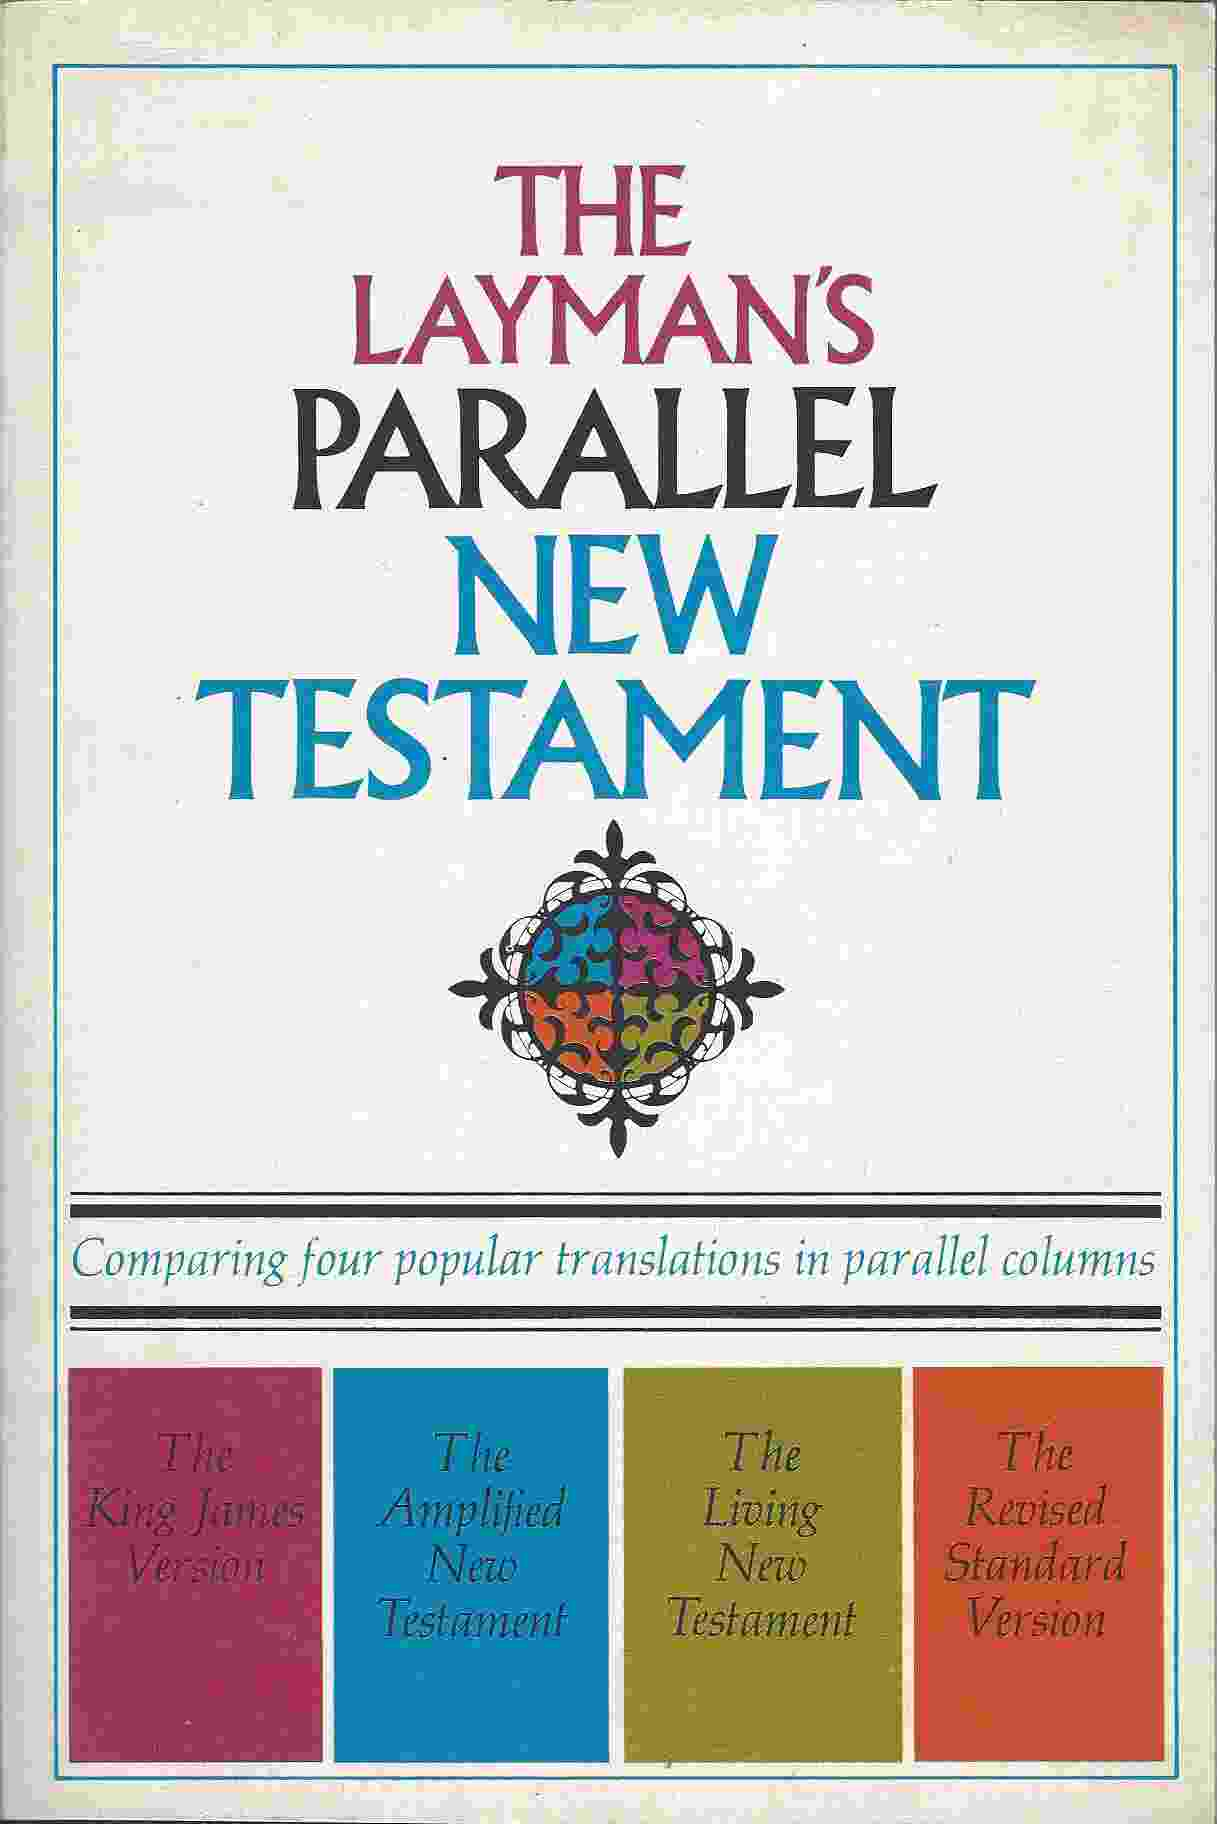 Image for THE LAYMAN'S PARALLEL NEW TESTAMENT King James Version; the Amplified New Testament; the Living New Testament; Revised Standard Version